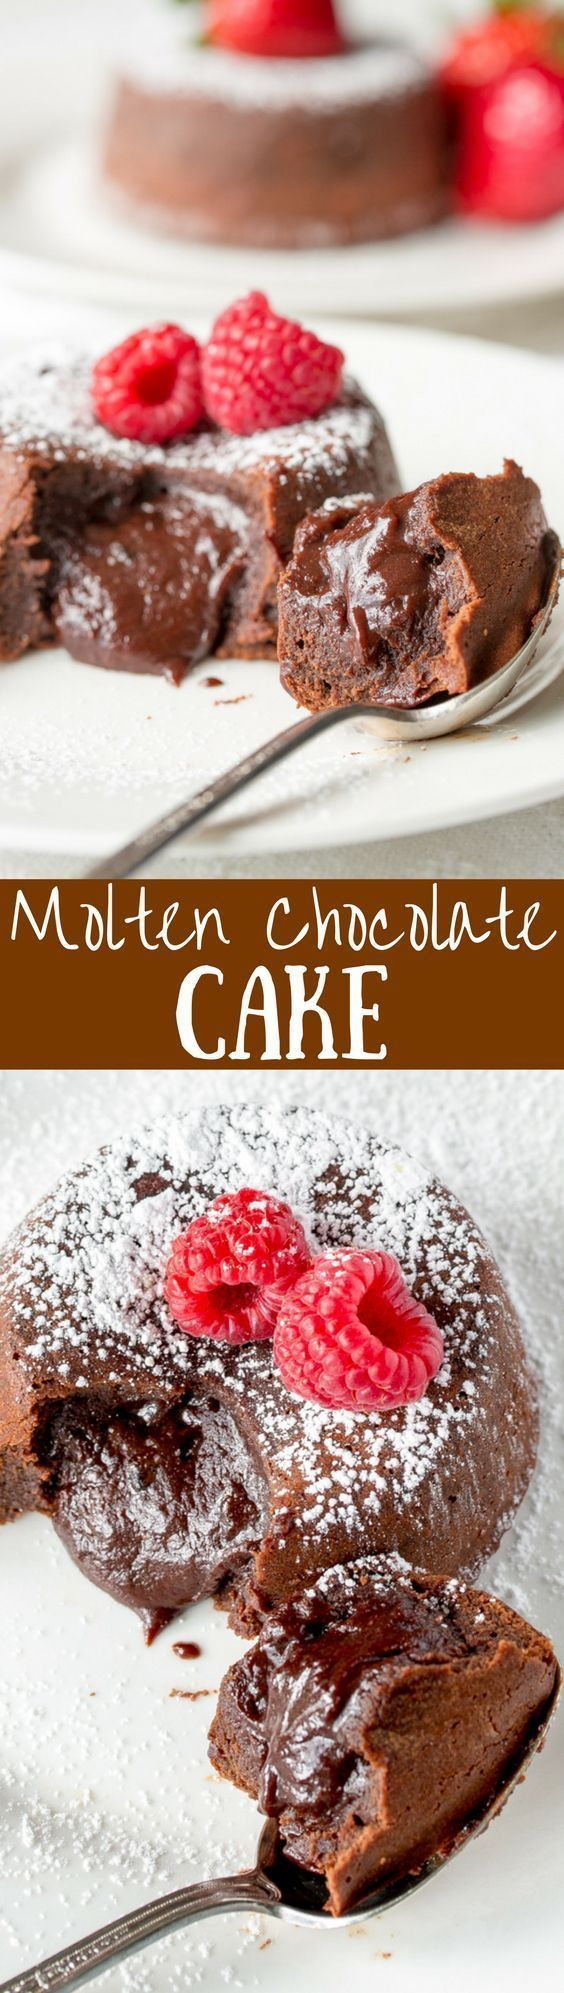 Molten Chocolate Cake -famous for it's tender, moist cake, a light crispy crust, and gooey rich chocolate middle. www.savingdessert...